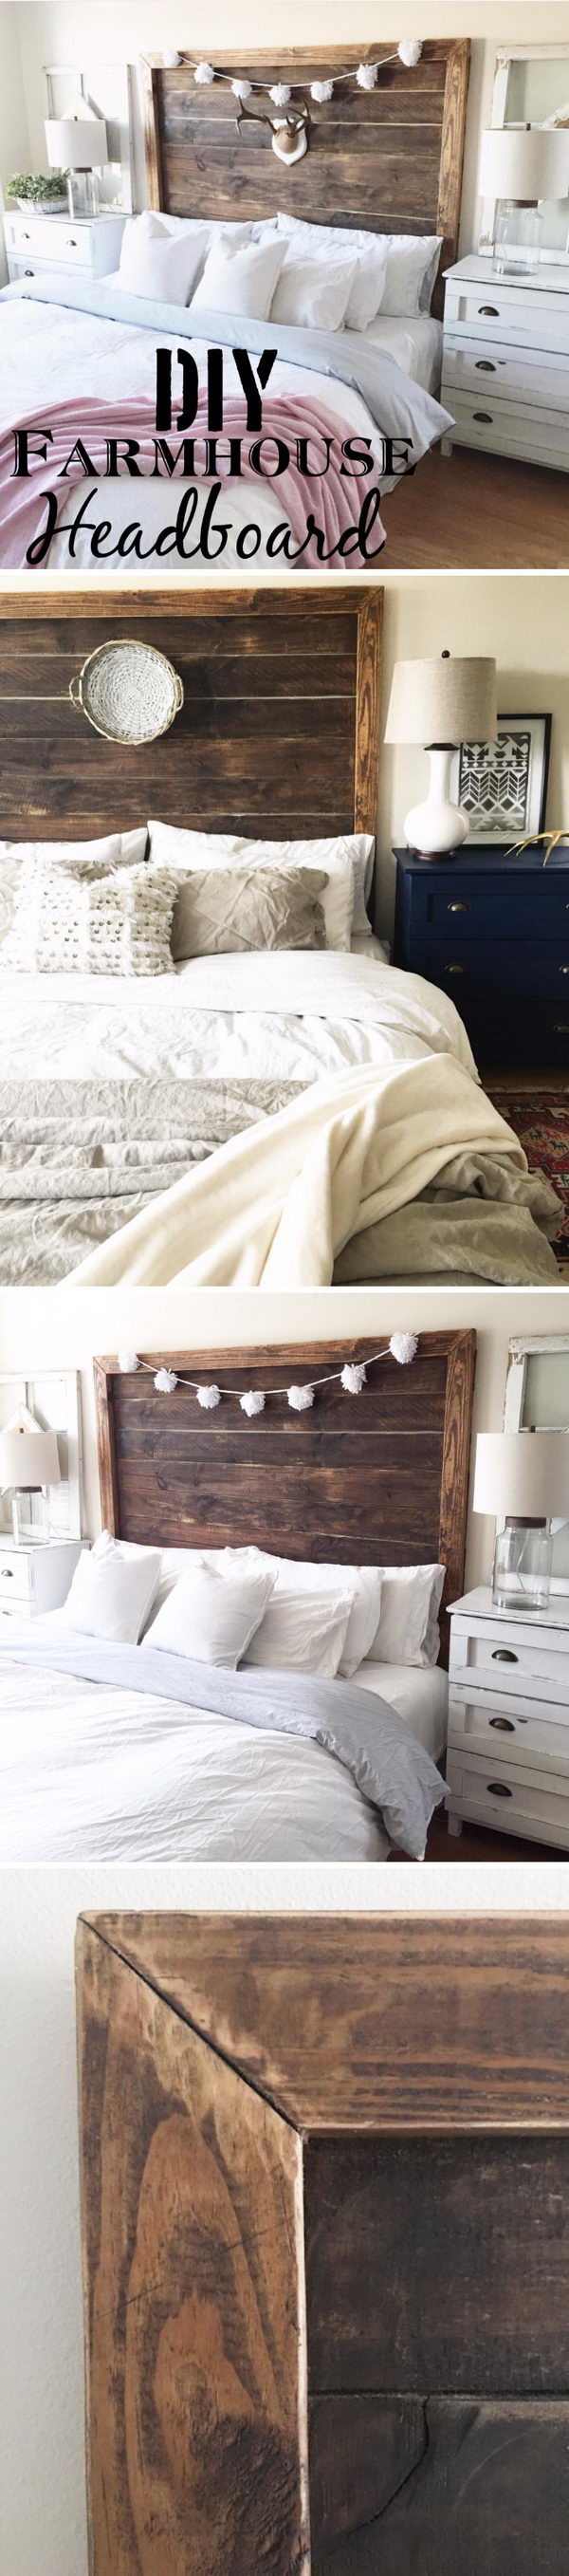 DIY Farmhouse Headboard.